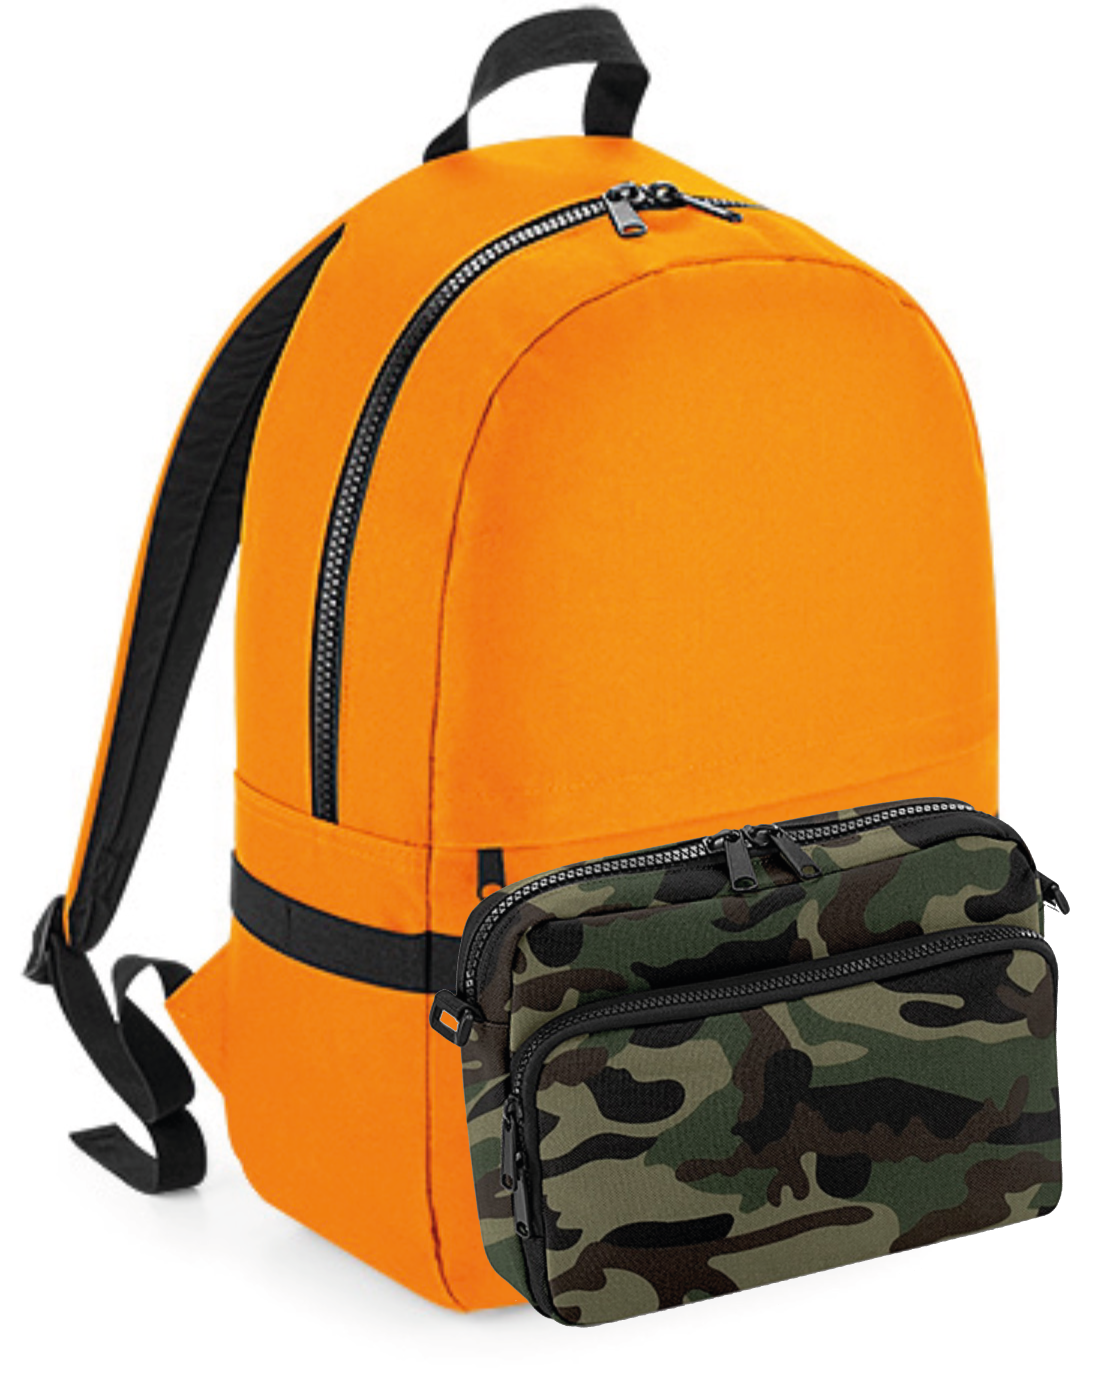 5130_BG240_Modulr_20-Litre-Backpack_Orange_2L-camo_002